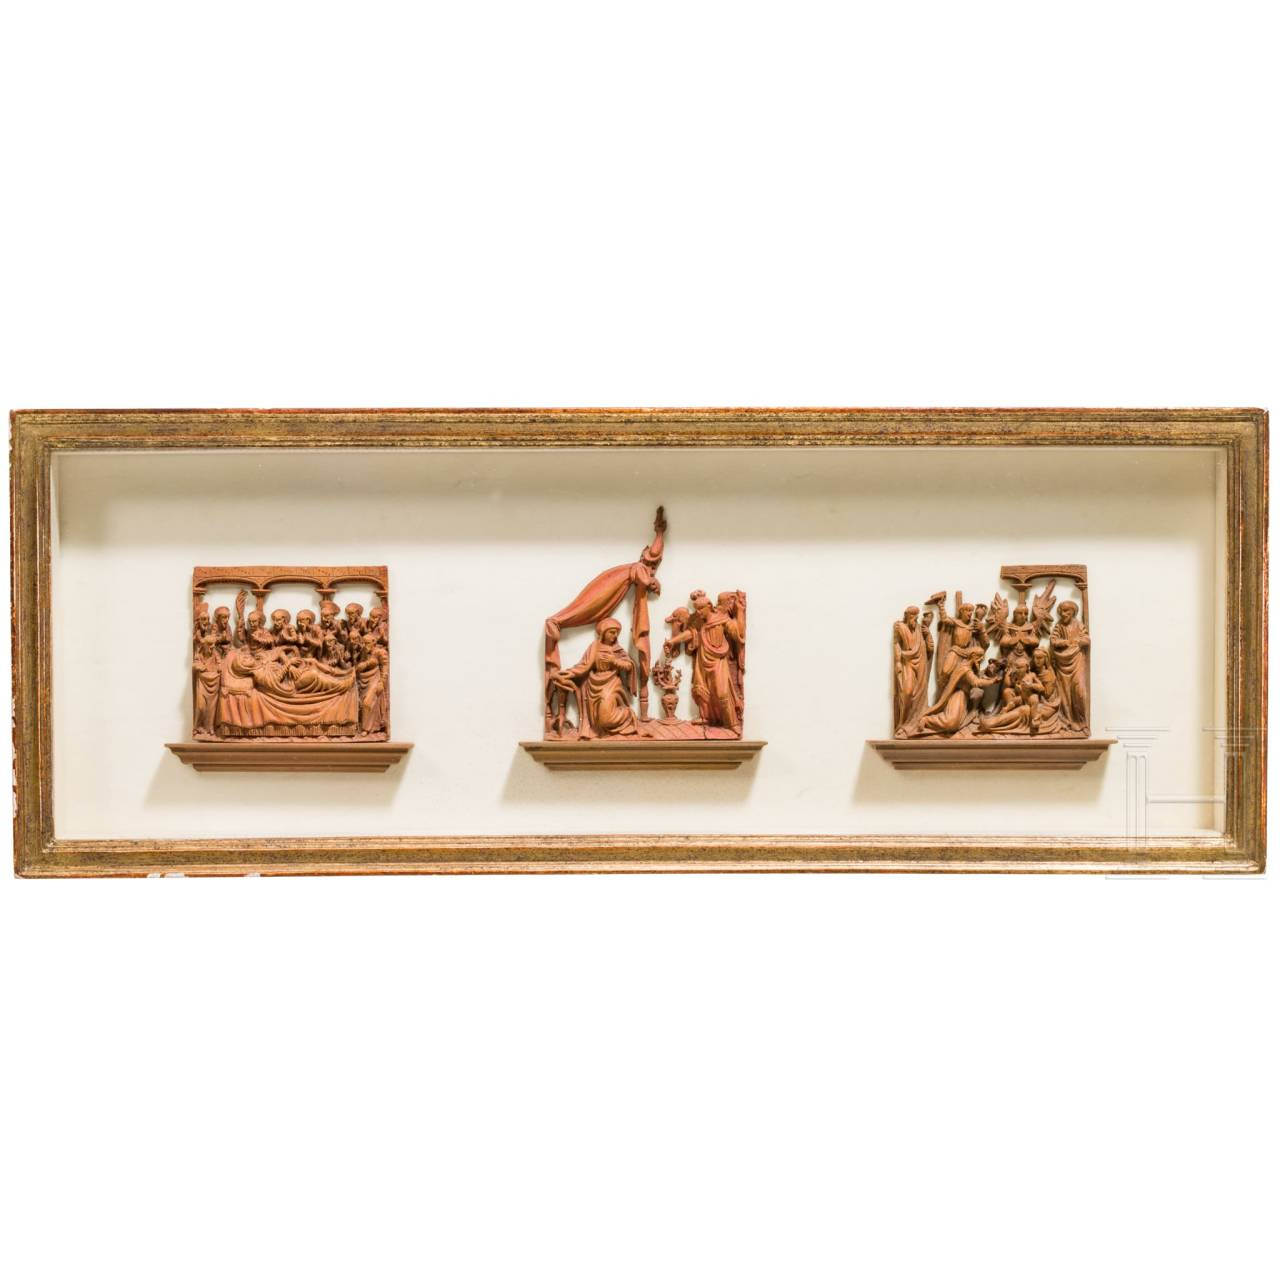 Three Flemish or French microcarvings showing scenes from the life of Virgin Mary, circa 1600